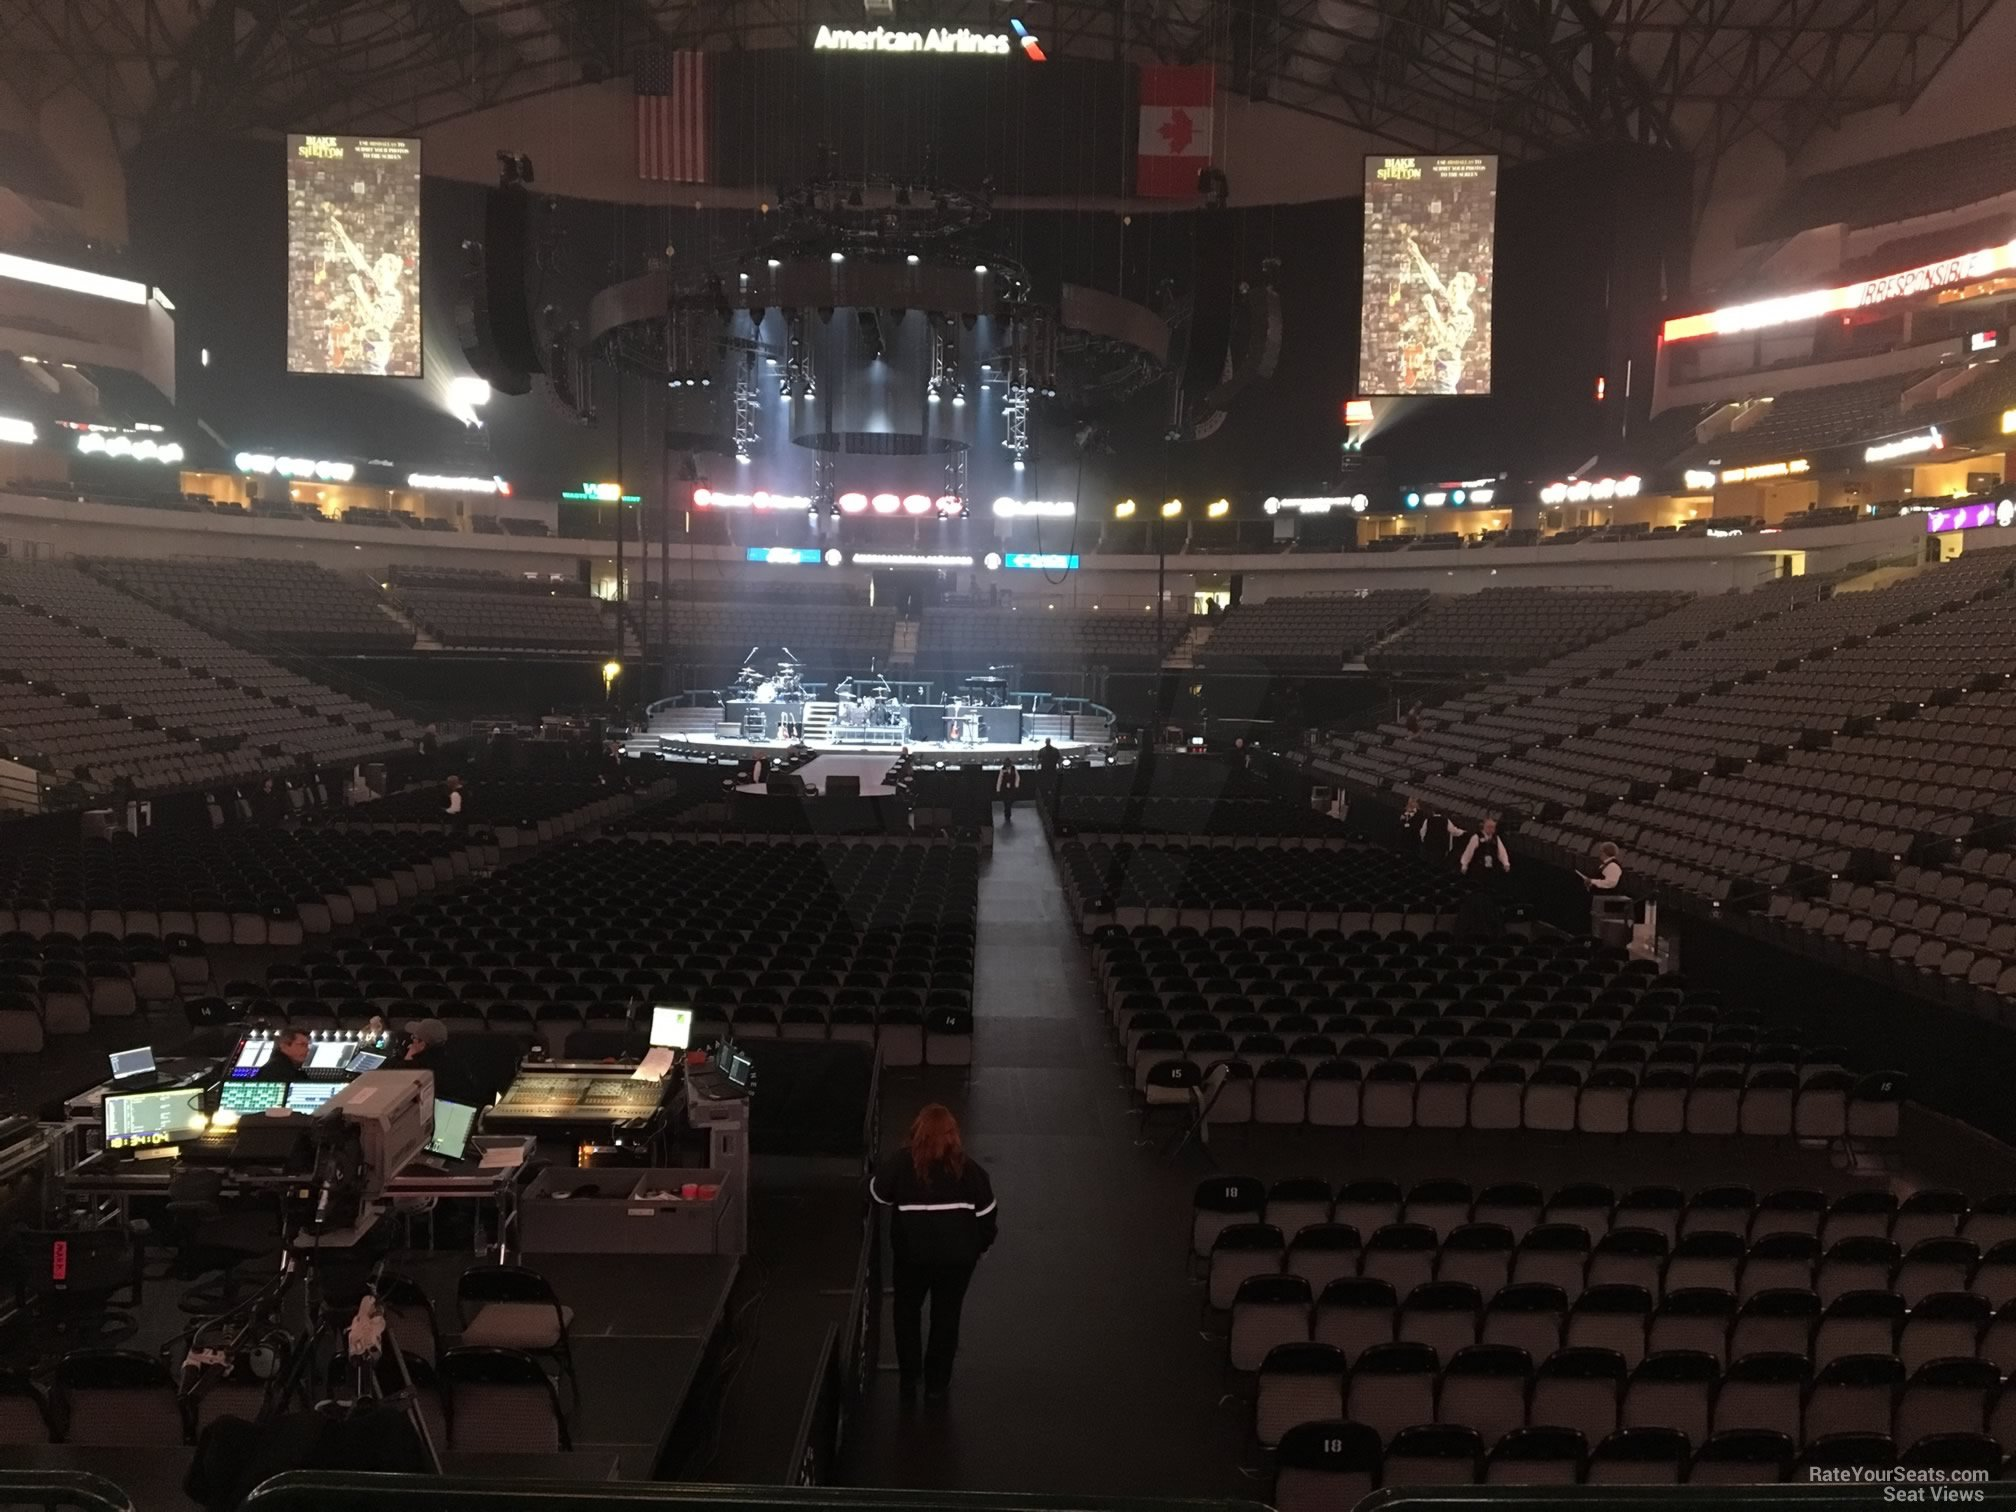 Concert Seat View for American Airlines Center Section 112, Row D